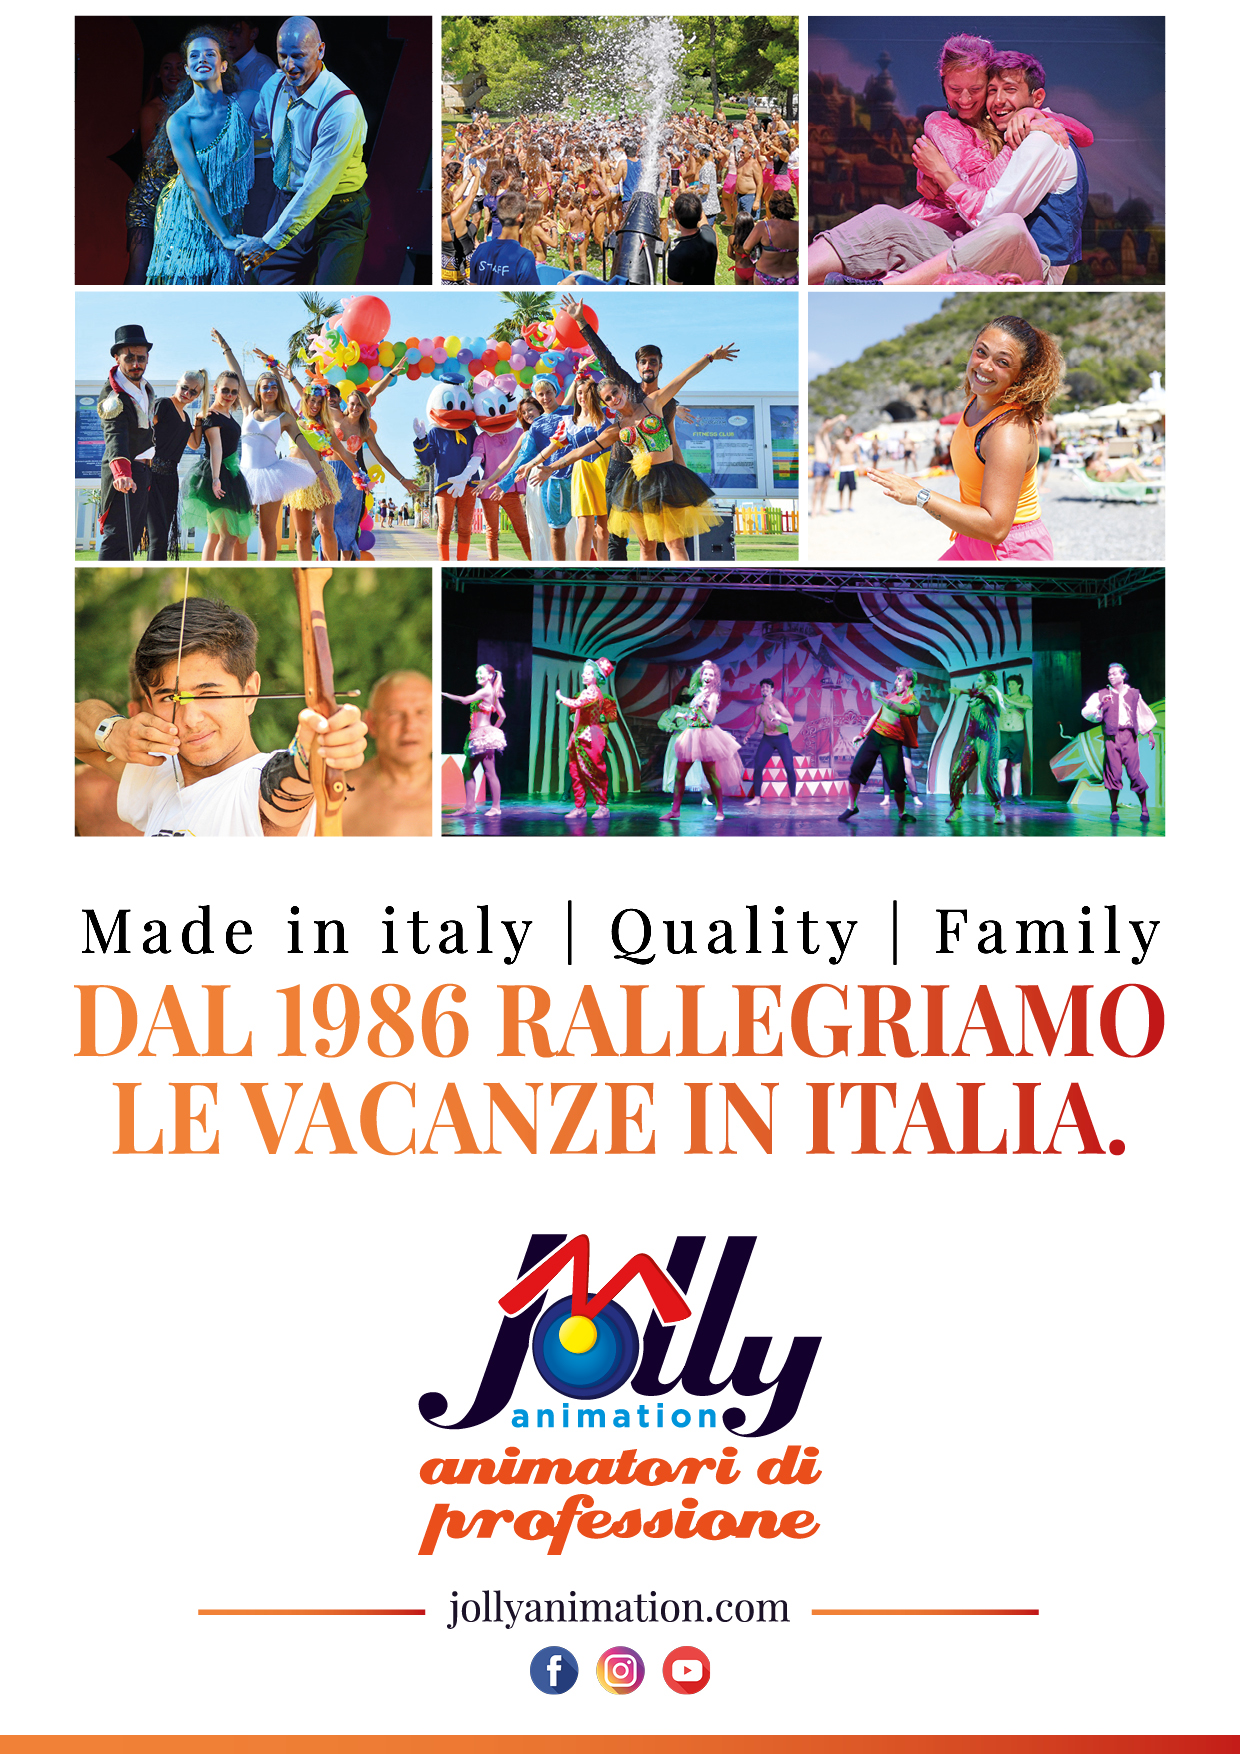 Quality, Family, Made in Italy